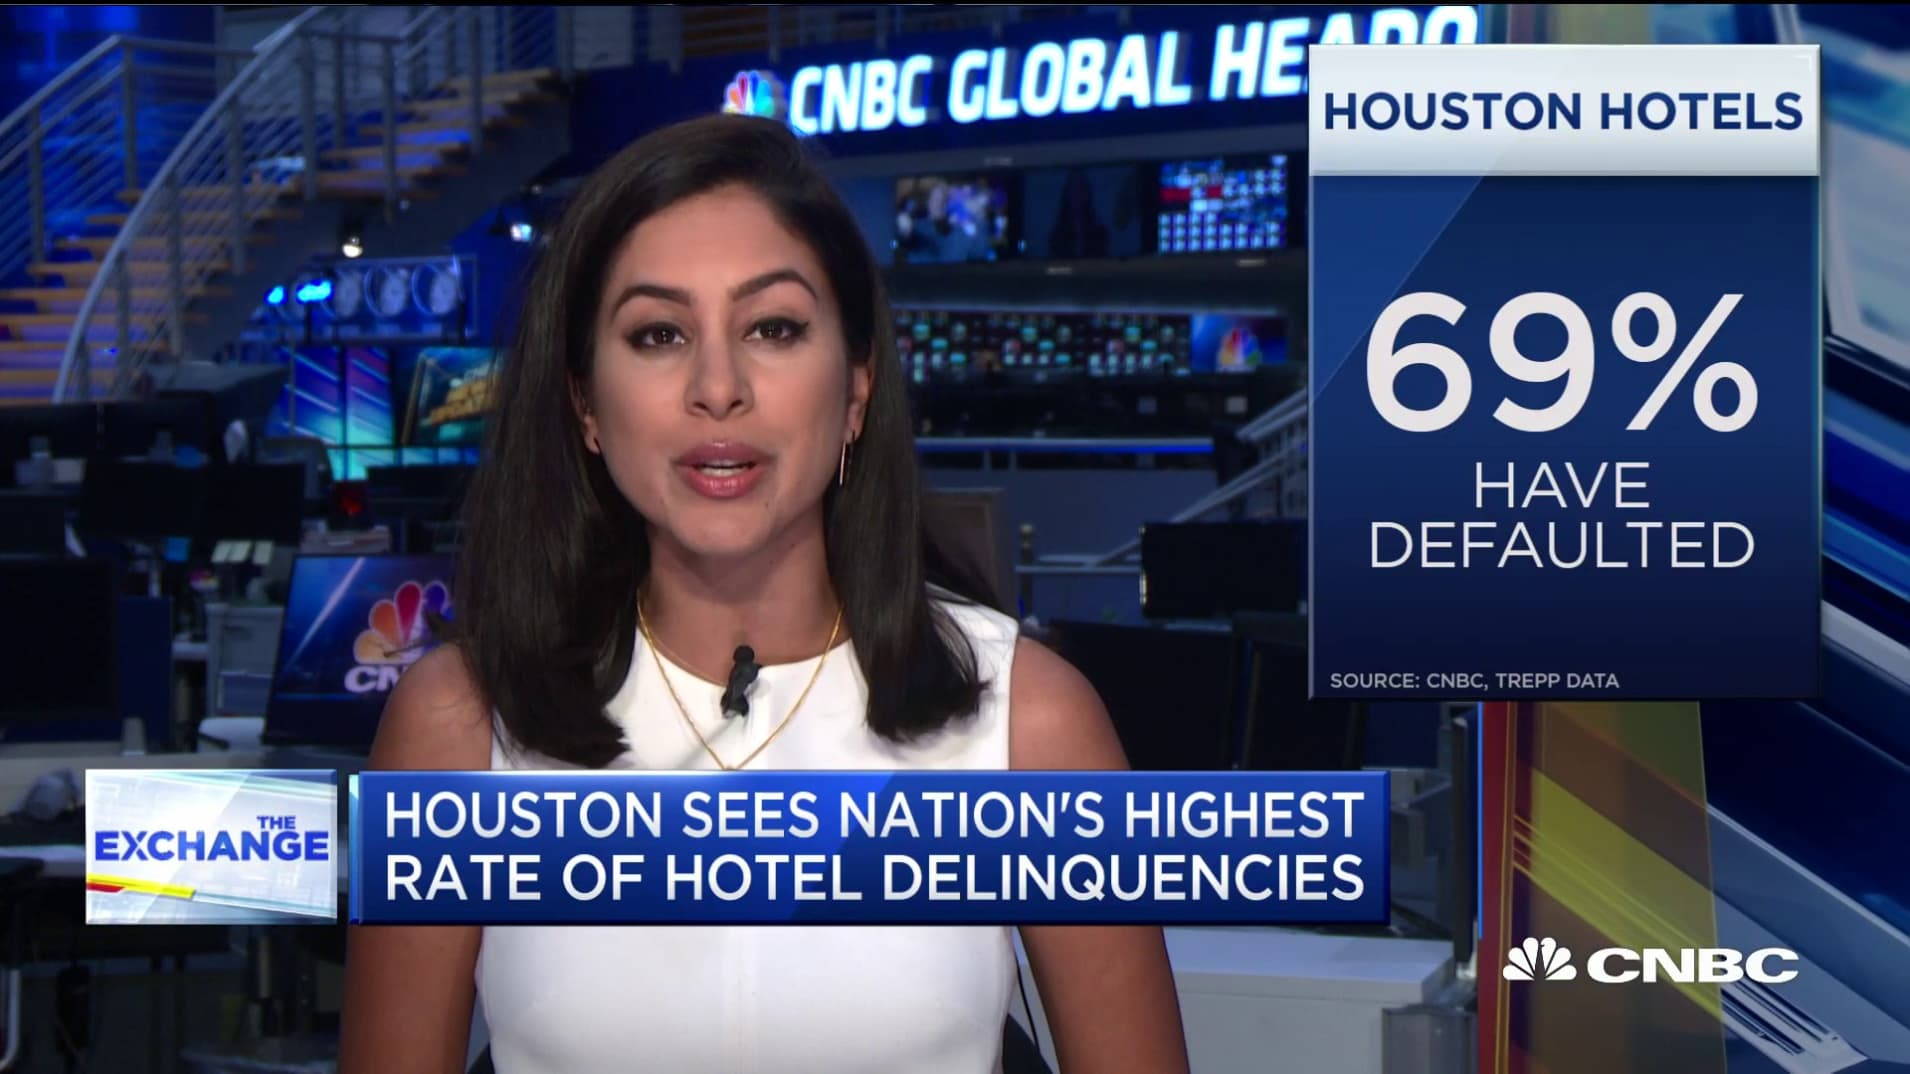 Nearly 70 Of Houston Hotels Have Financial Problems Due To Pandemic And Falling Oil Prices